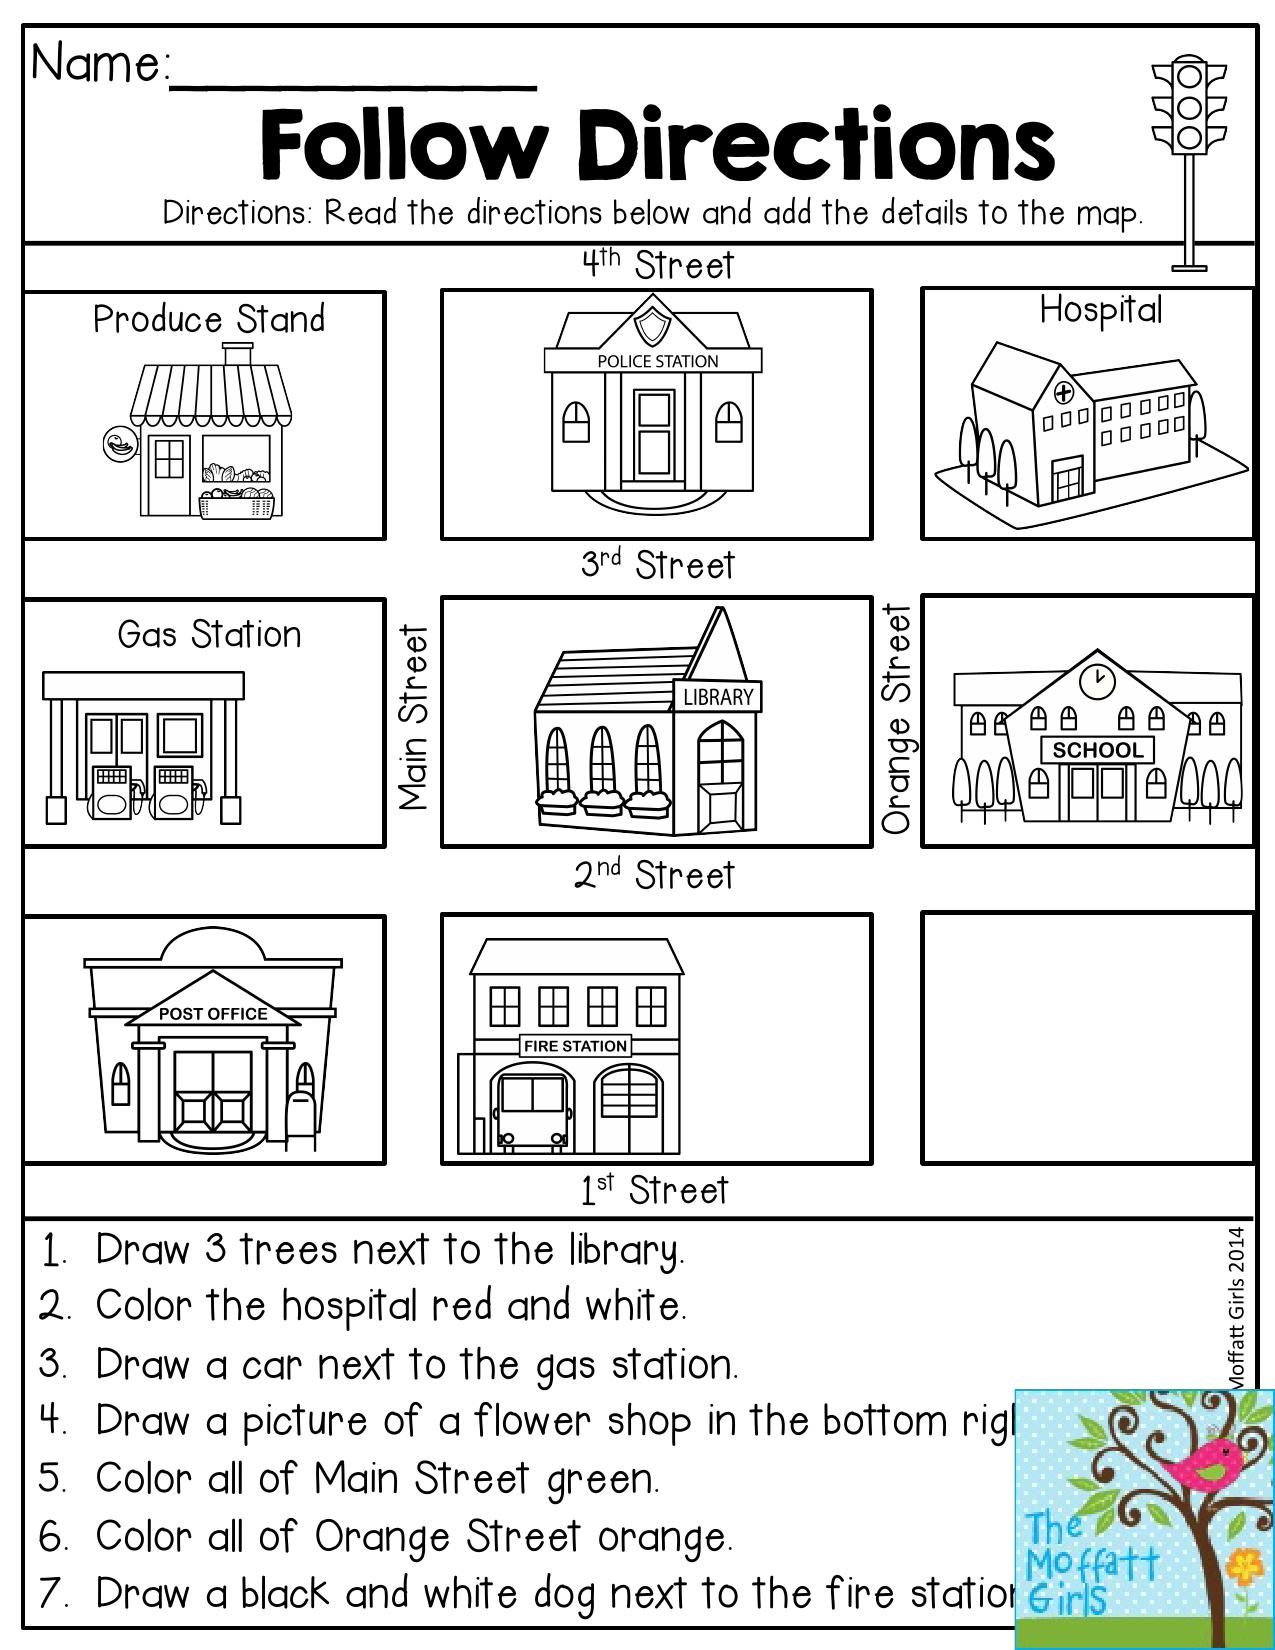 follow directions read the directions and add the details to the map fun activity to get students familiar with how a map works while teaching them how to